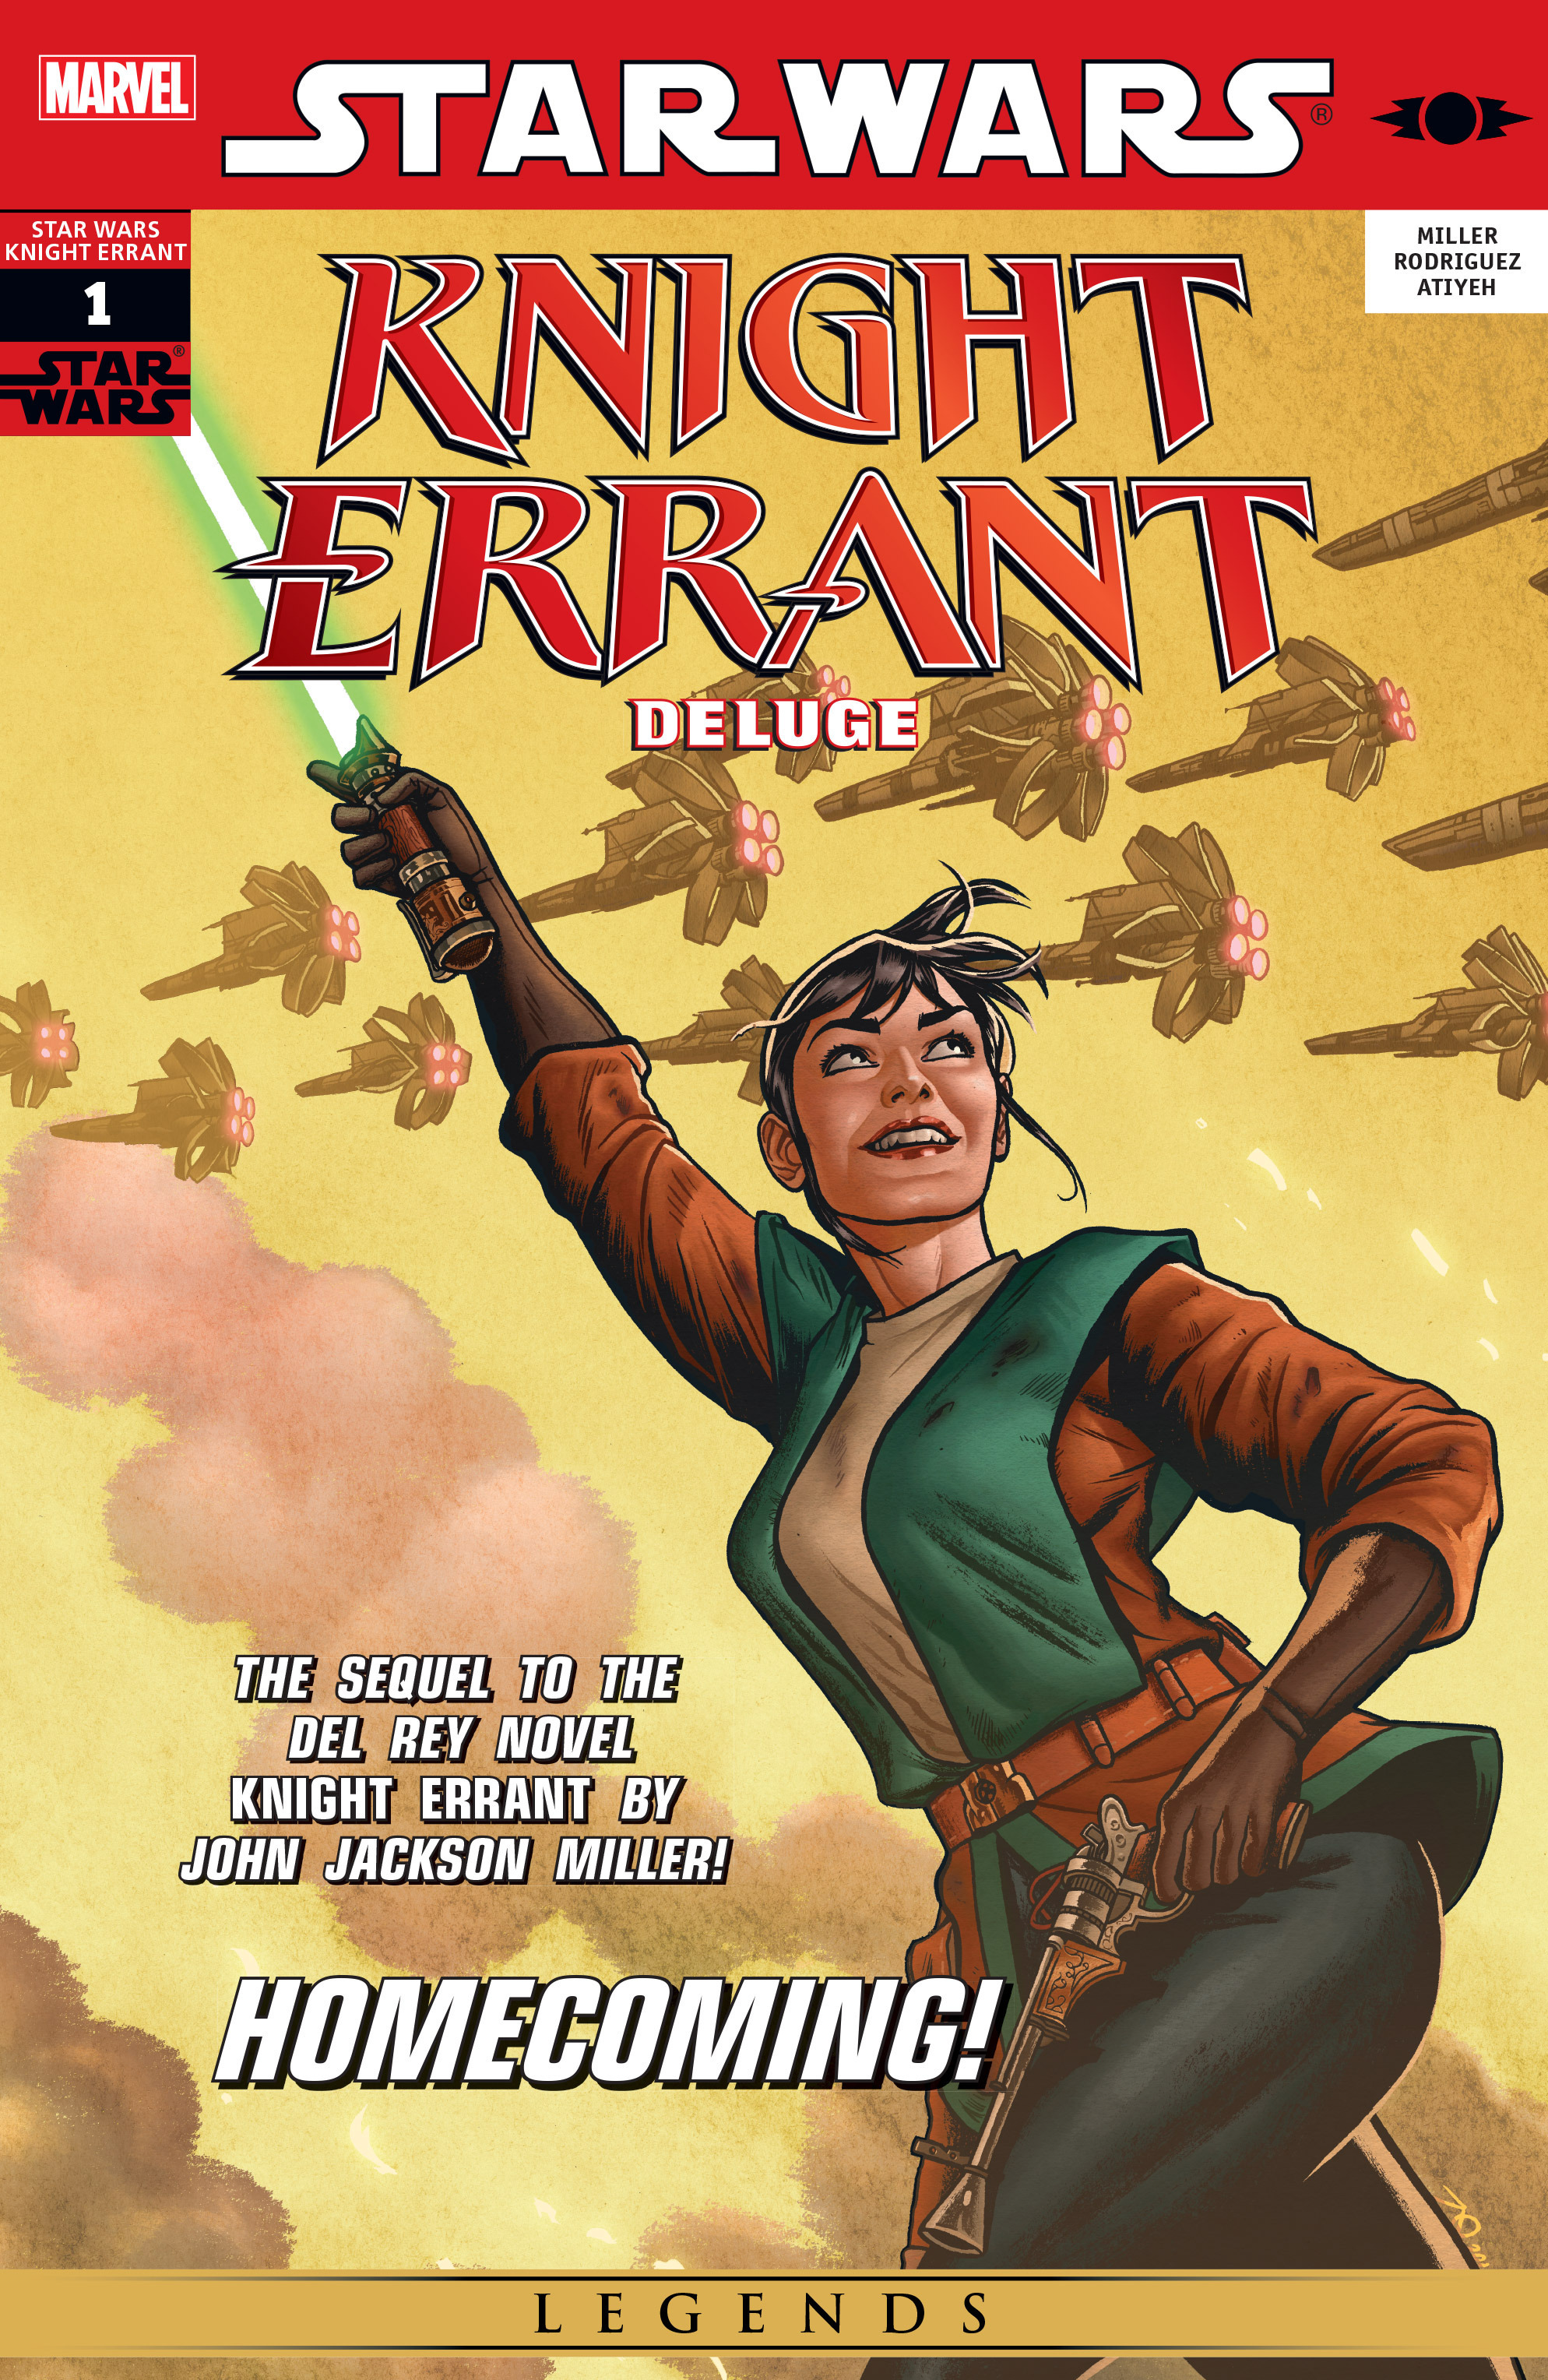 Read online Star Wars: Knight Errant - Deluge comic -  Issue #1 - 1